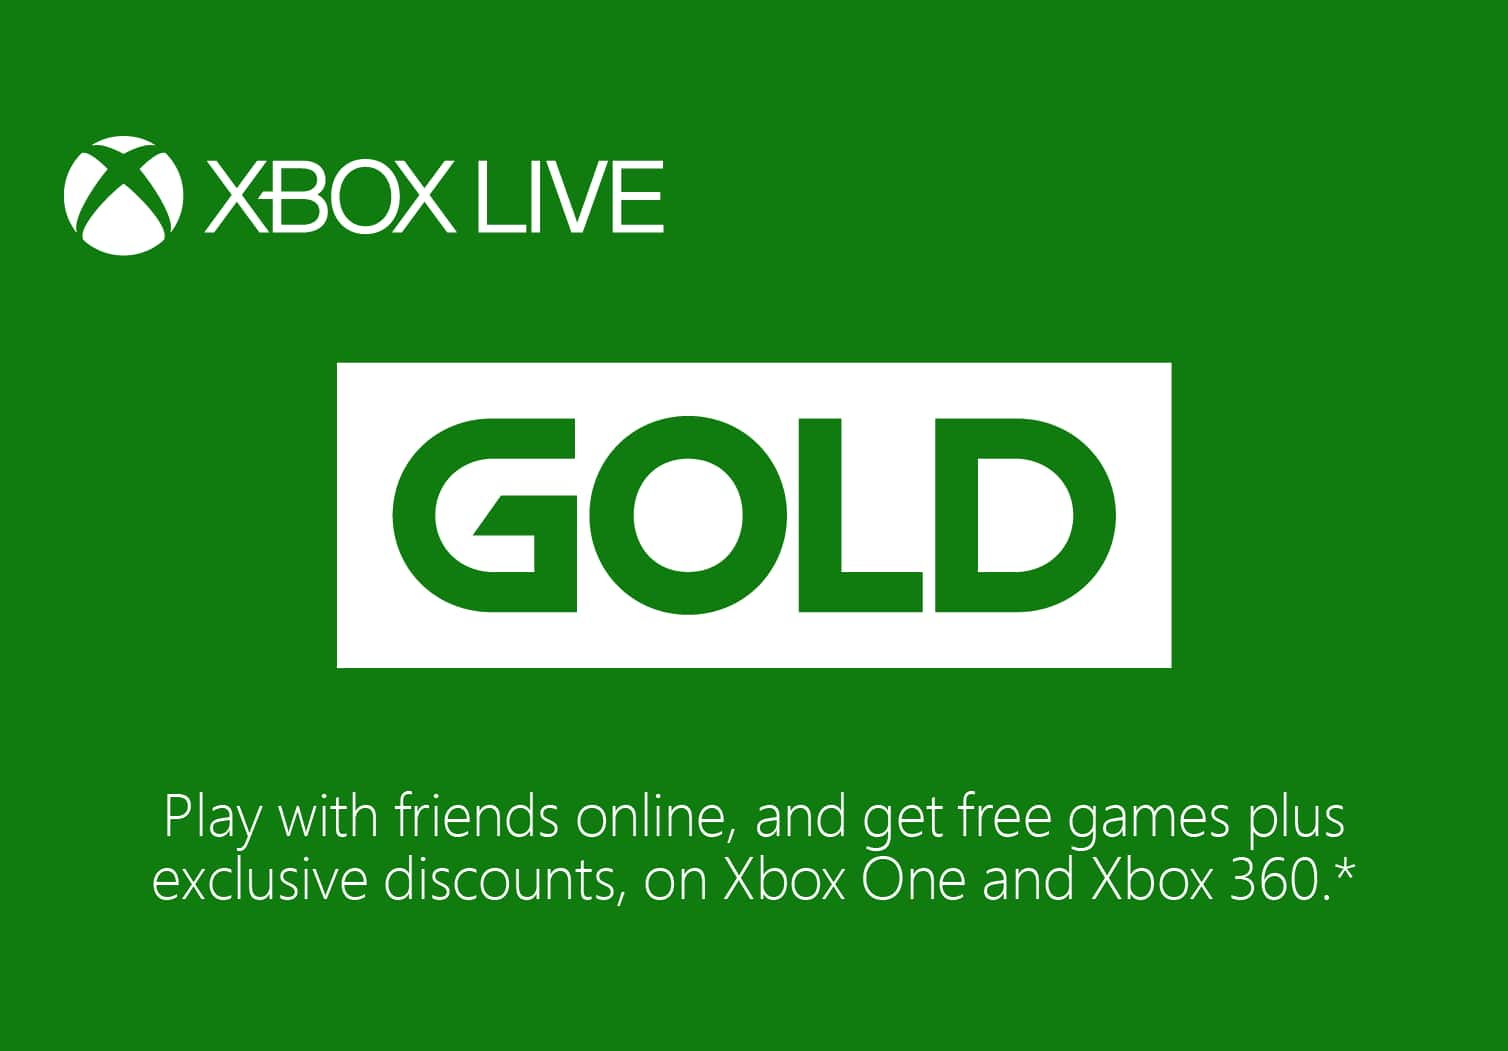 Xbox Live 12 Month Subscription - 30,000/29,000 Microsoft Rewards